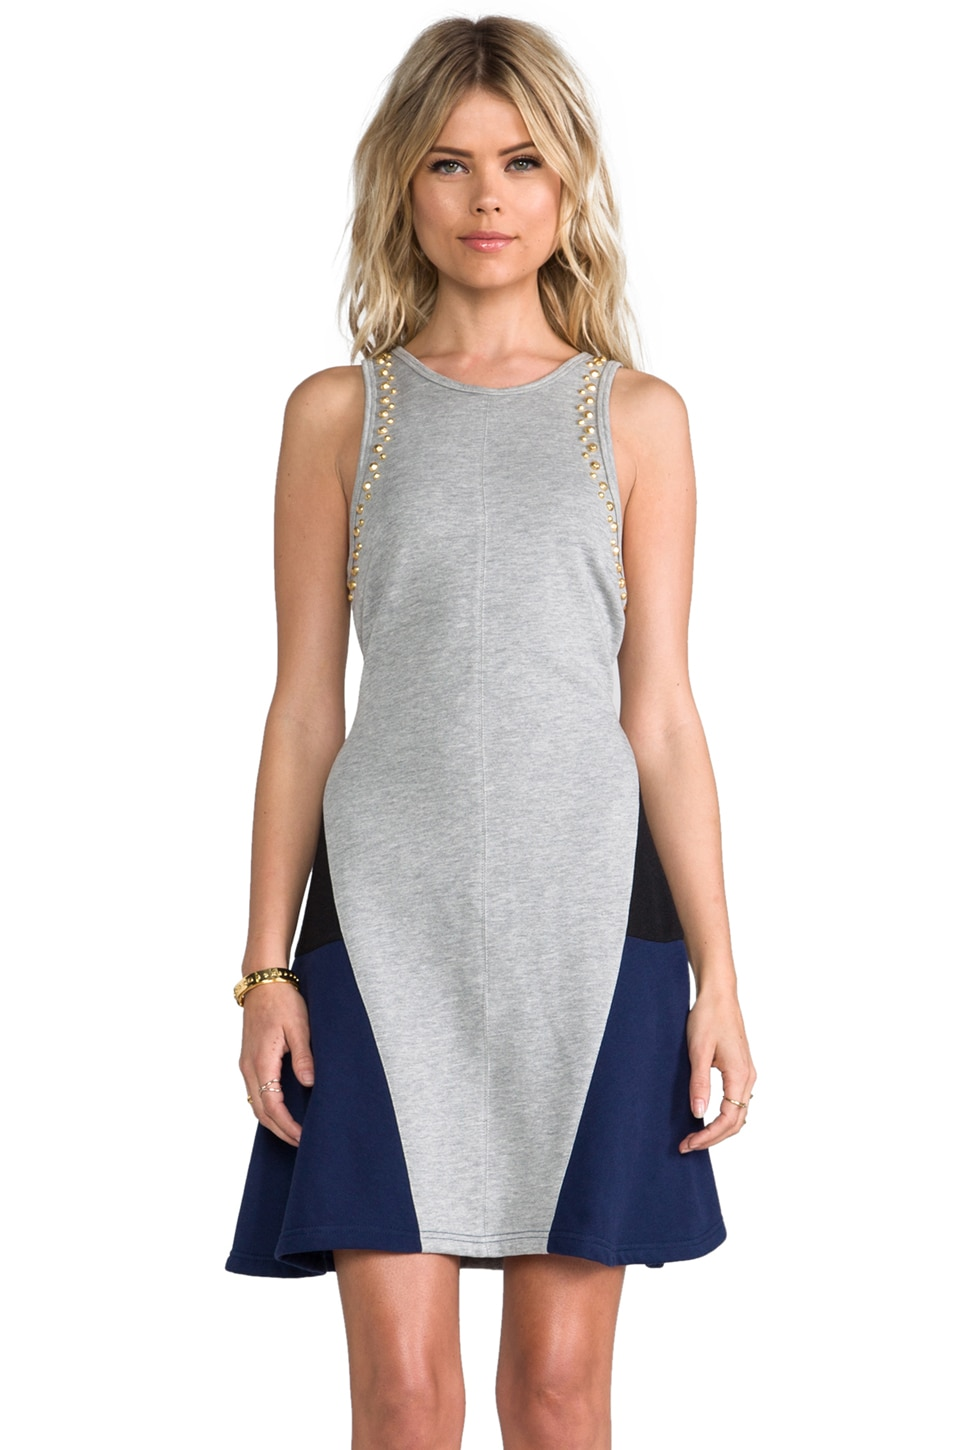 Pencey Standard Studded Dress in Grey & Navy